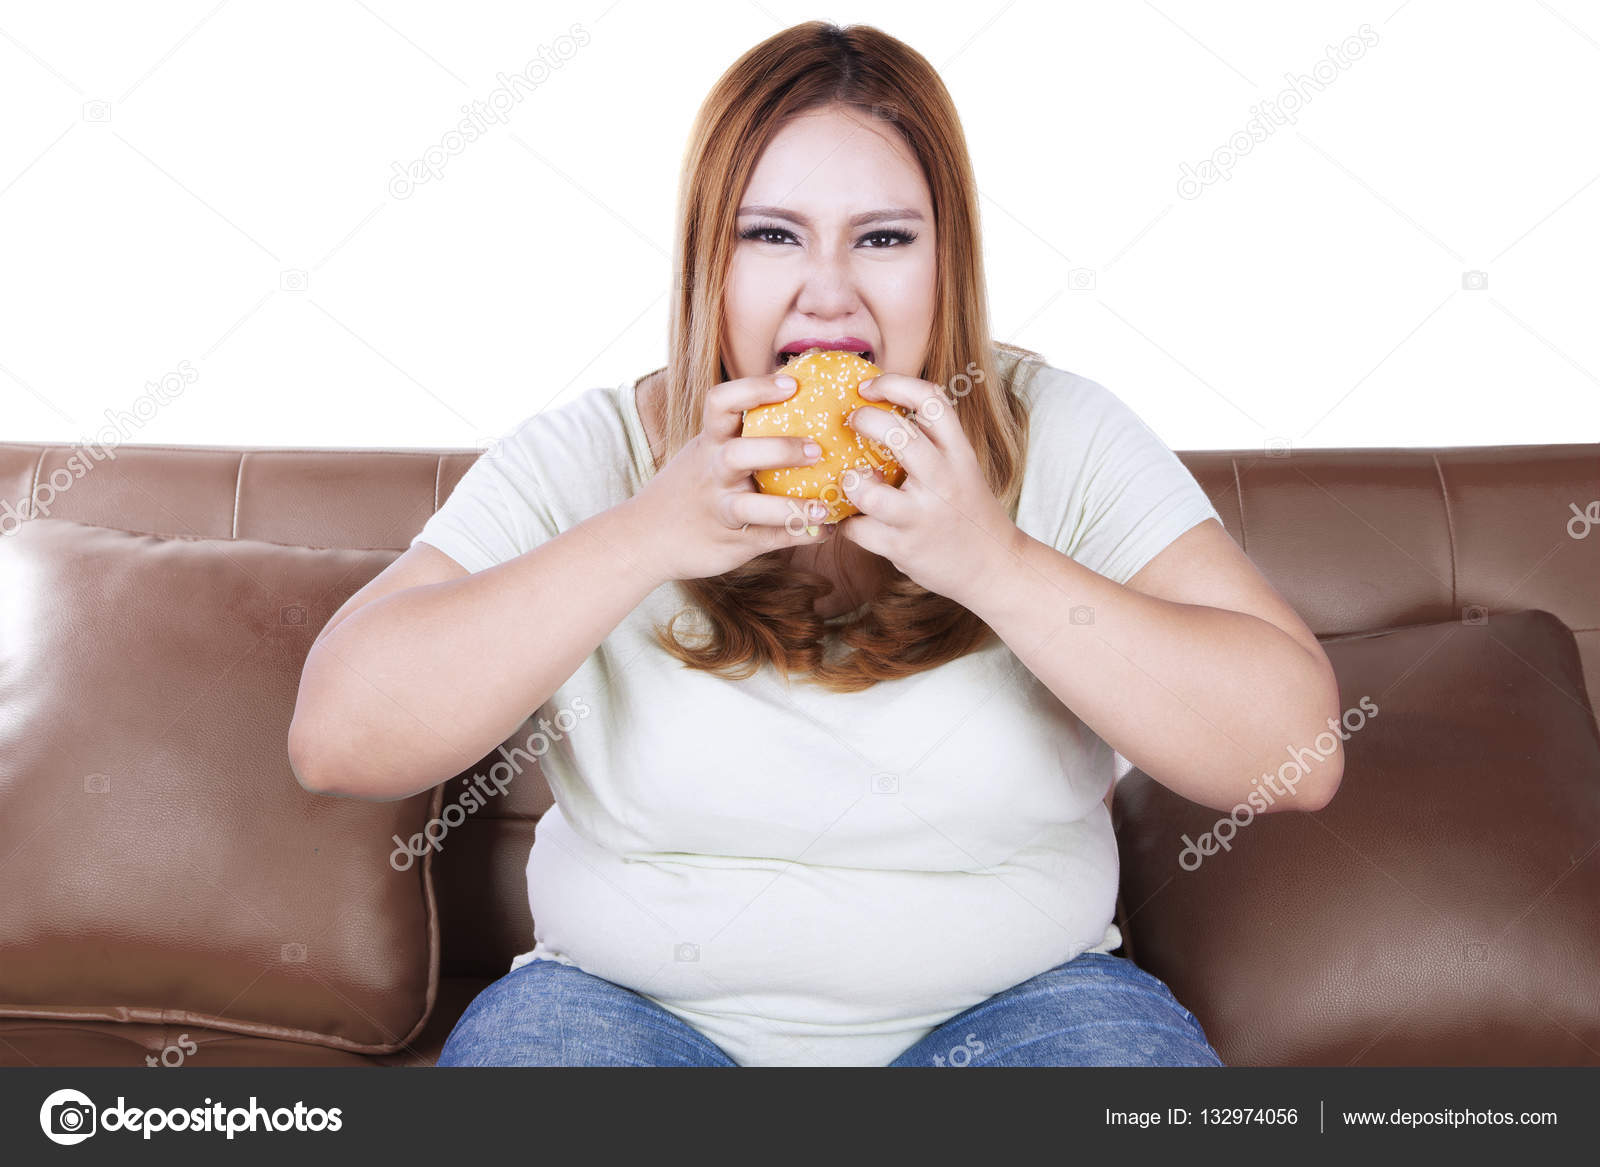 bbw eating food